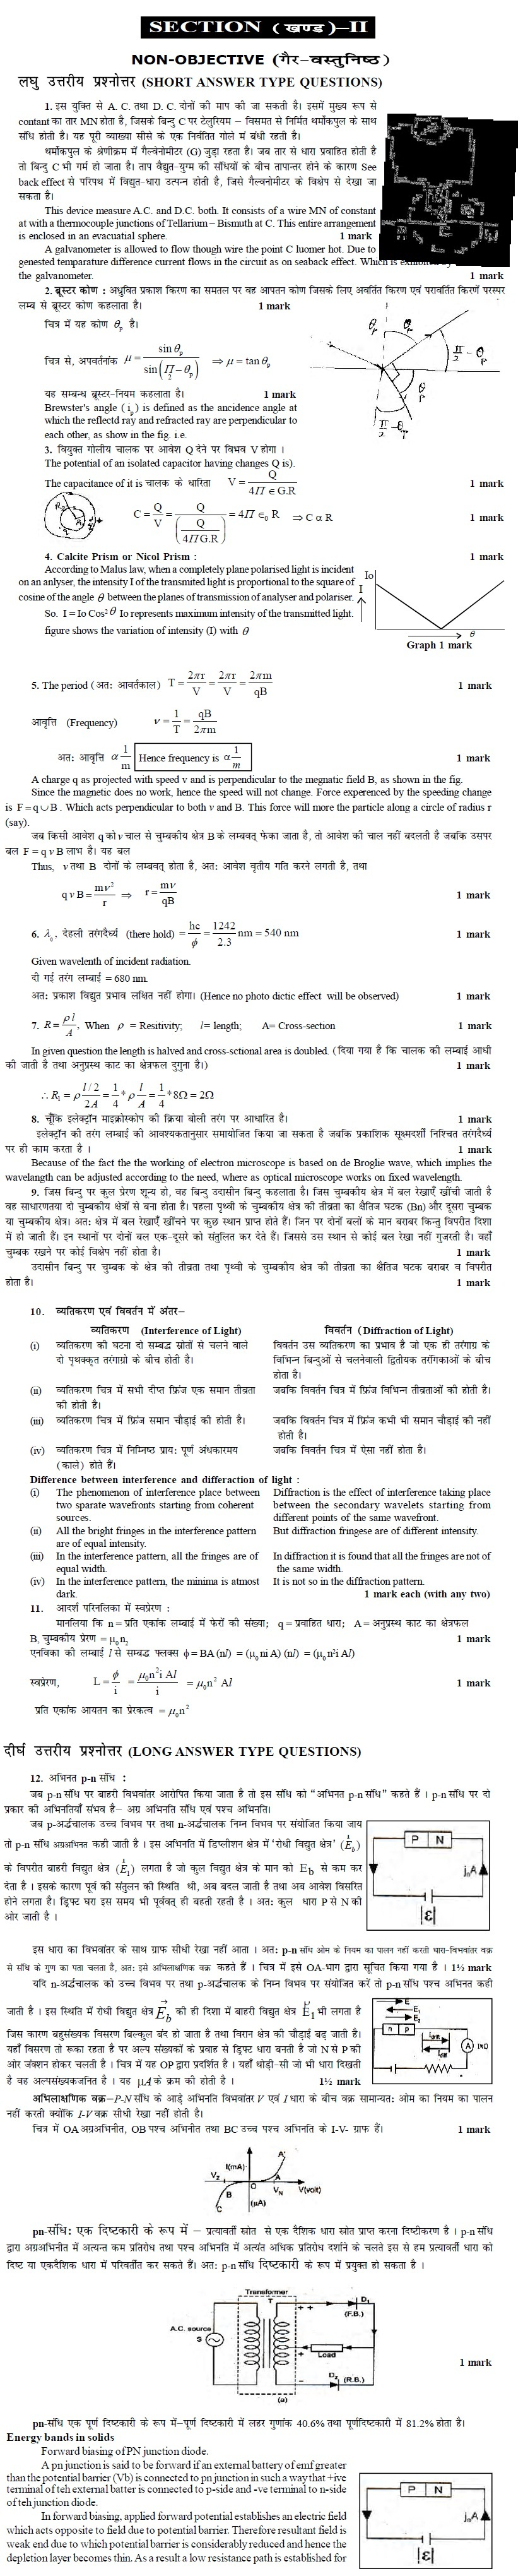 Bihar Board 12th Model Paper Physics | BSEB Model Paper with Answer